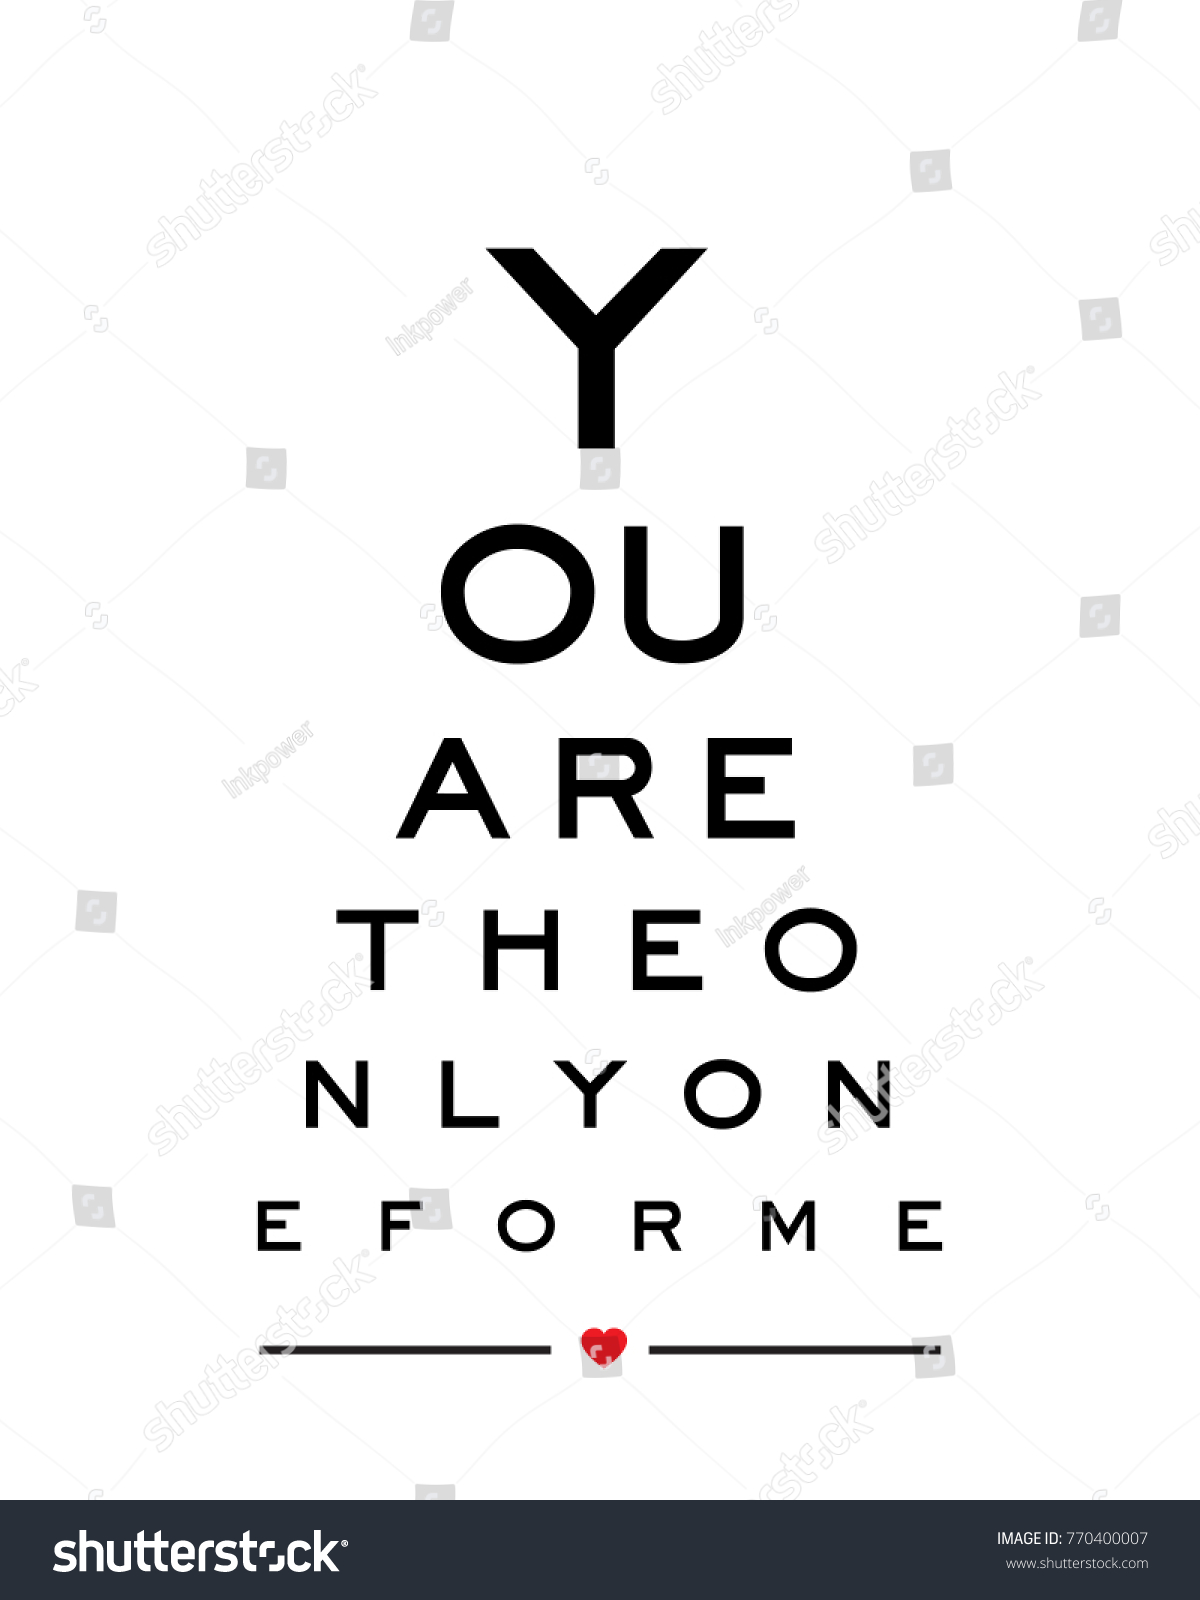 Eye chart snellen wall art print stock vector 770400007 shutterstock eye chart snellen wall art print design vector for you are the only one for me geenschuldenfo Choice Image